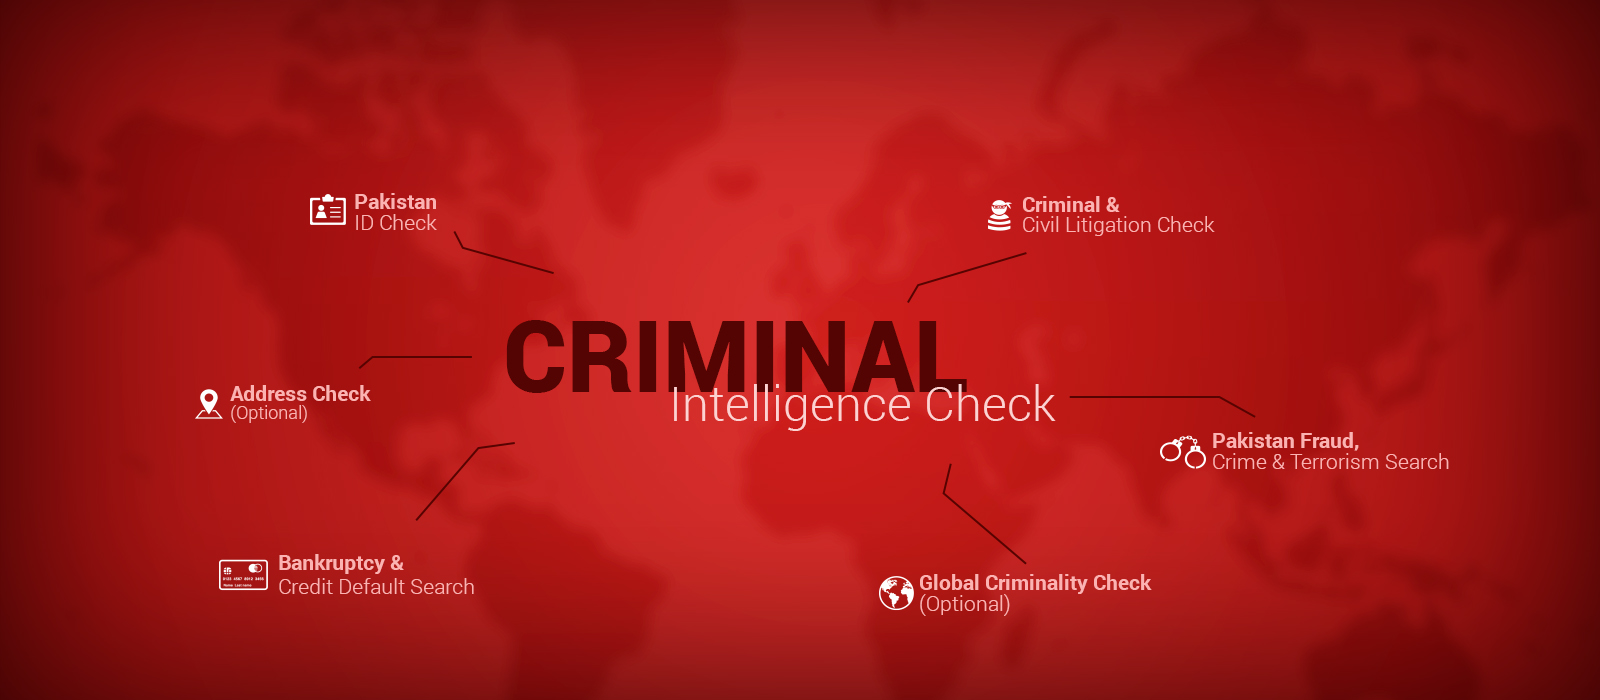 Get Discounted Criminal Intelligence Check Services